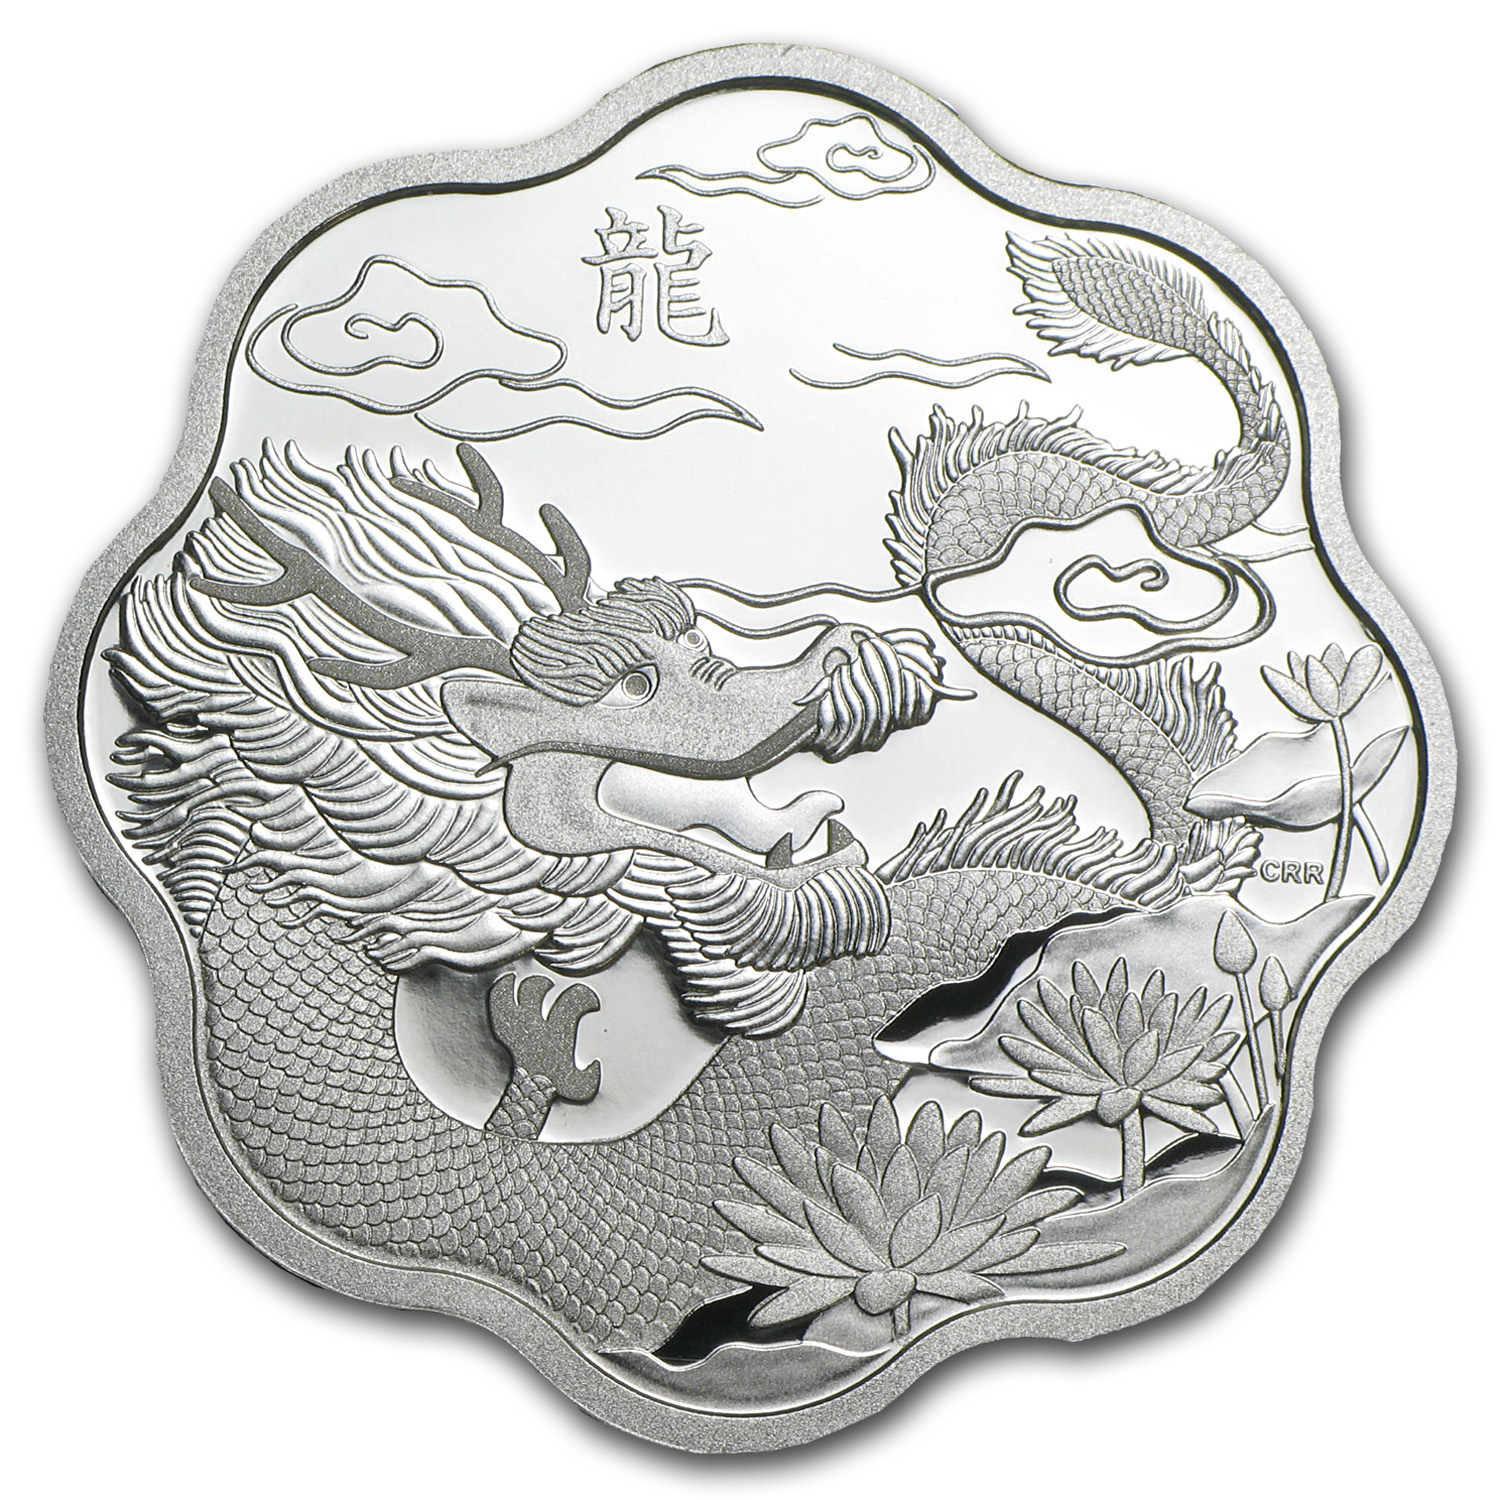 2012 Silver Canadian $15 Lunar Lotus Dragon (w/Box & COA)